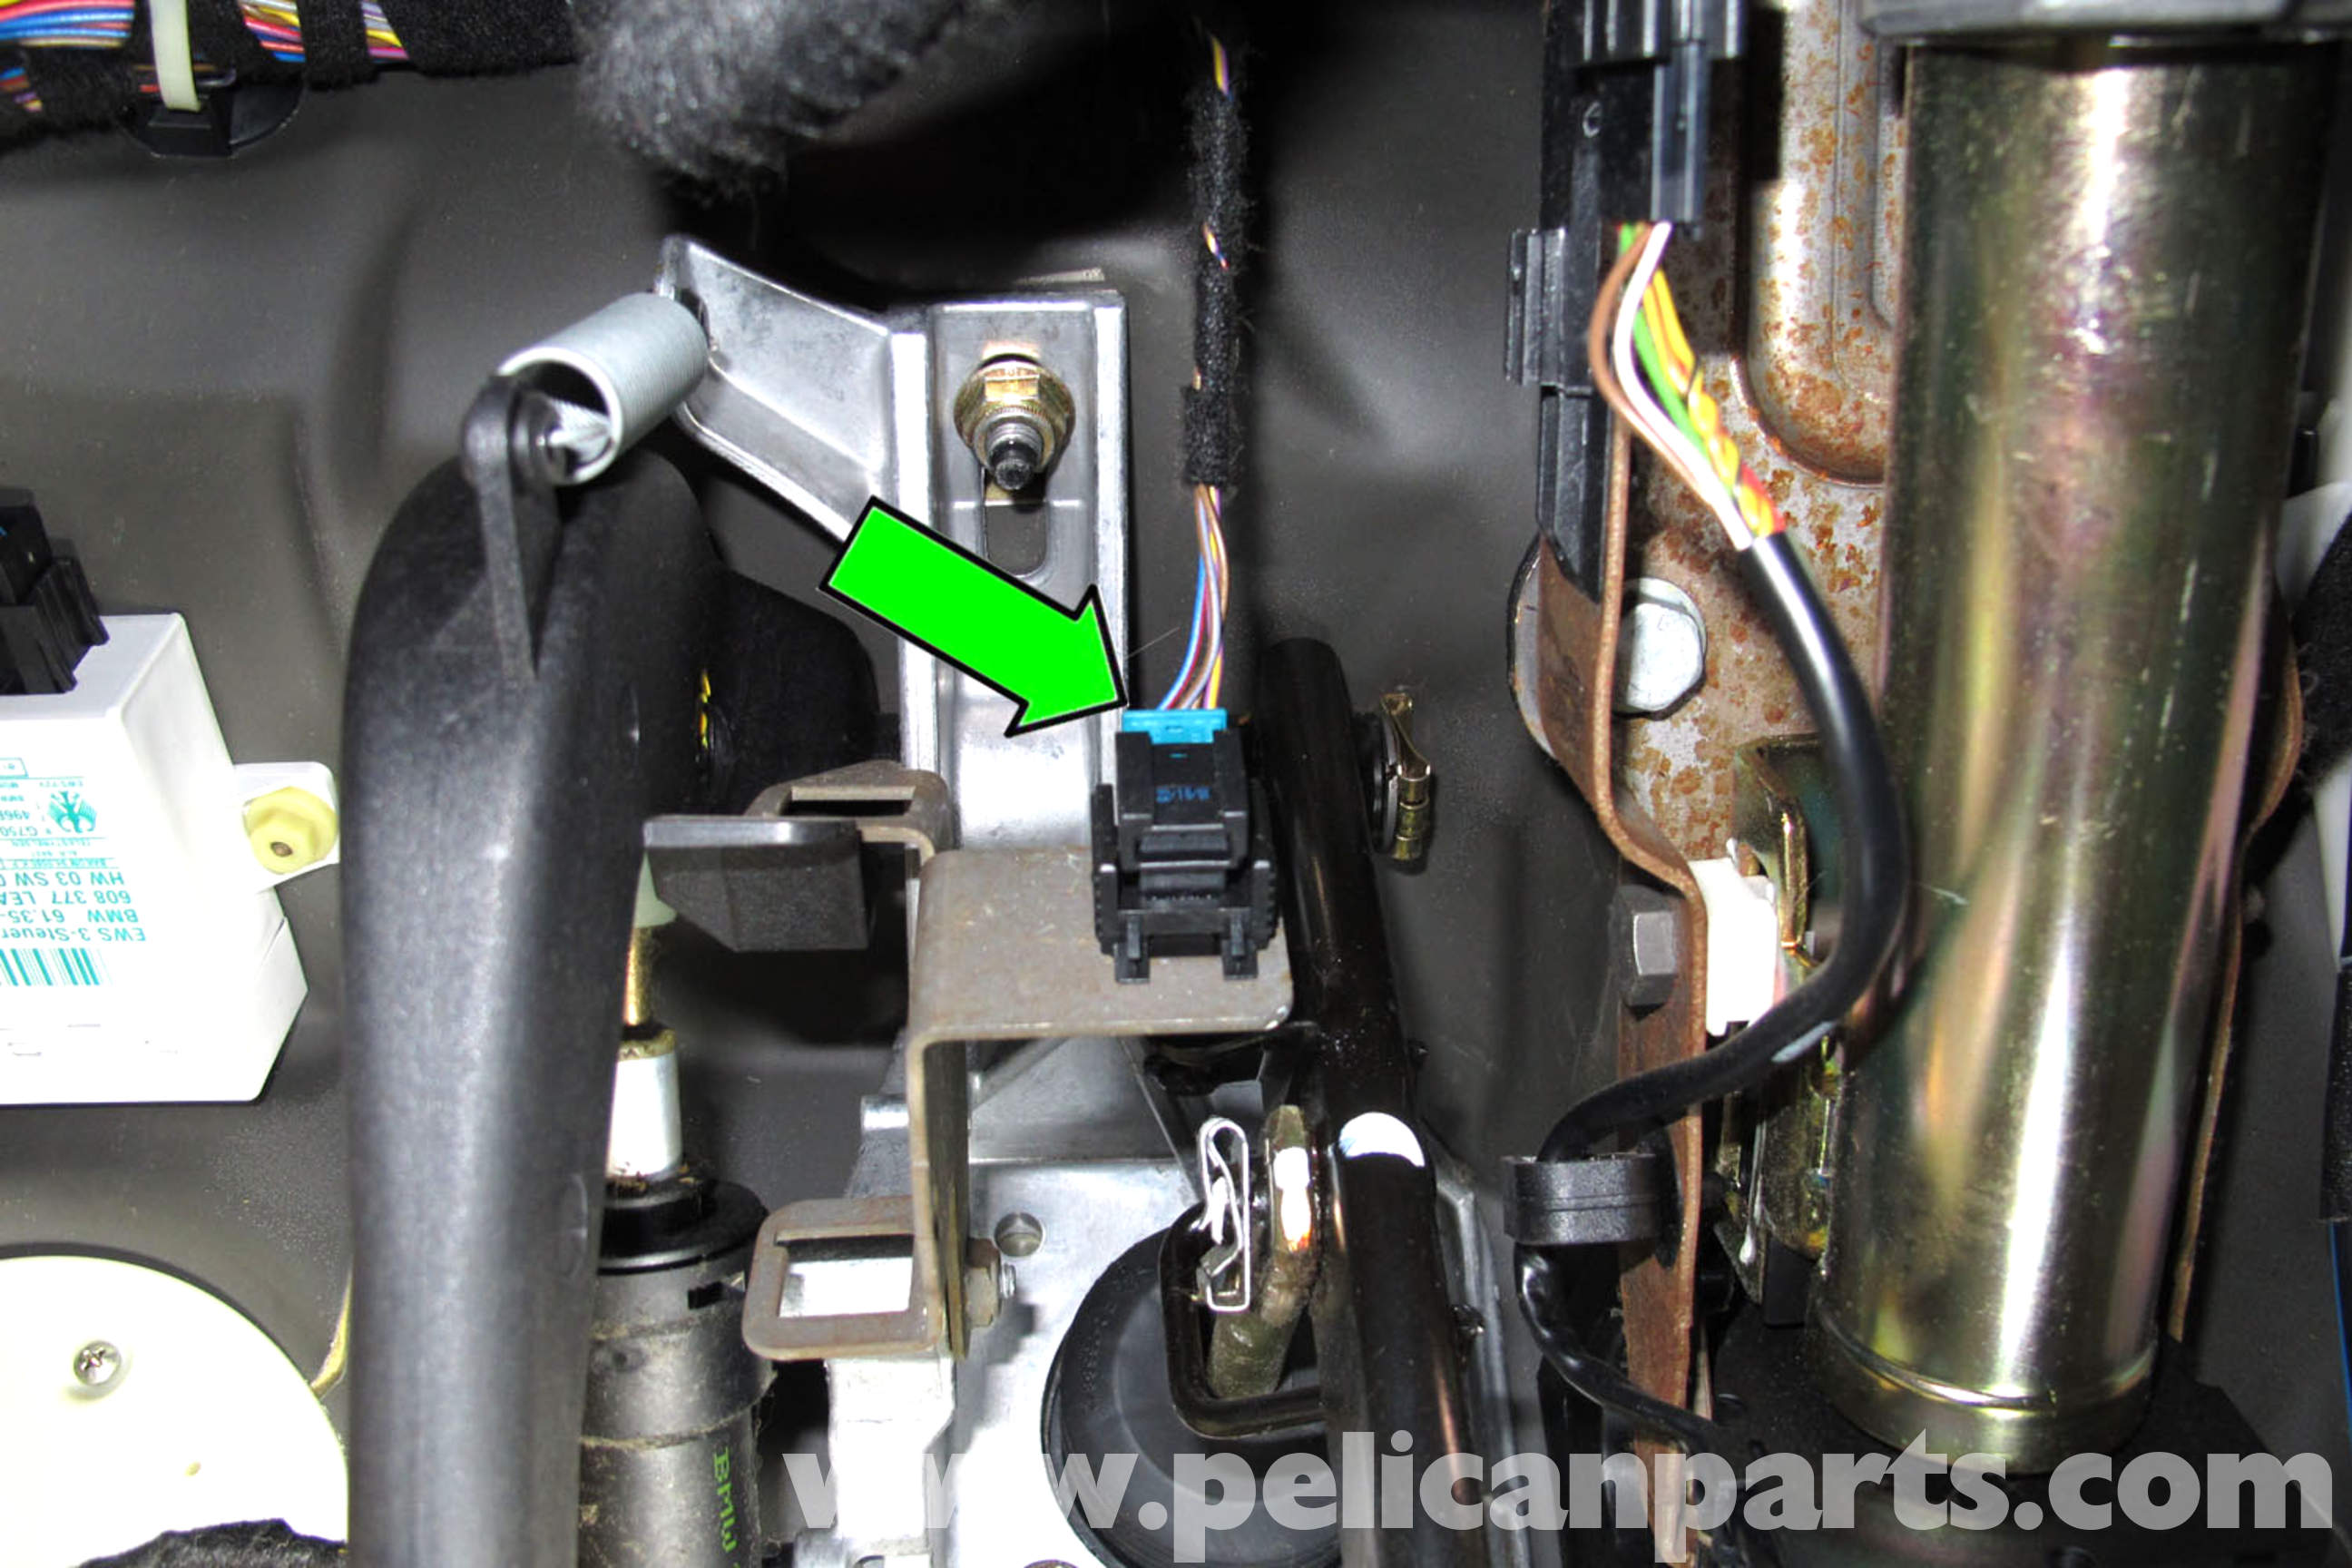 BMW E46 Brake Light Switch Replacement | BMW 325i (2001-2005), BMW ...